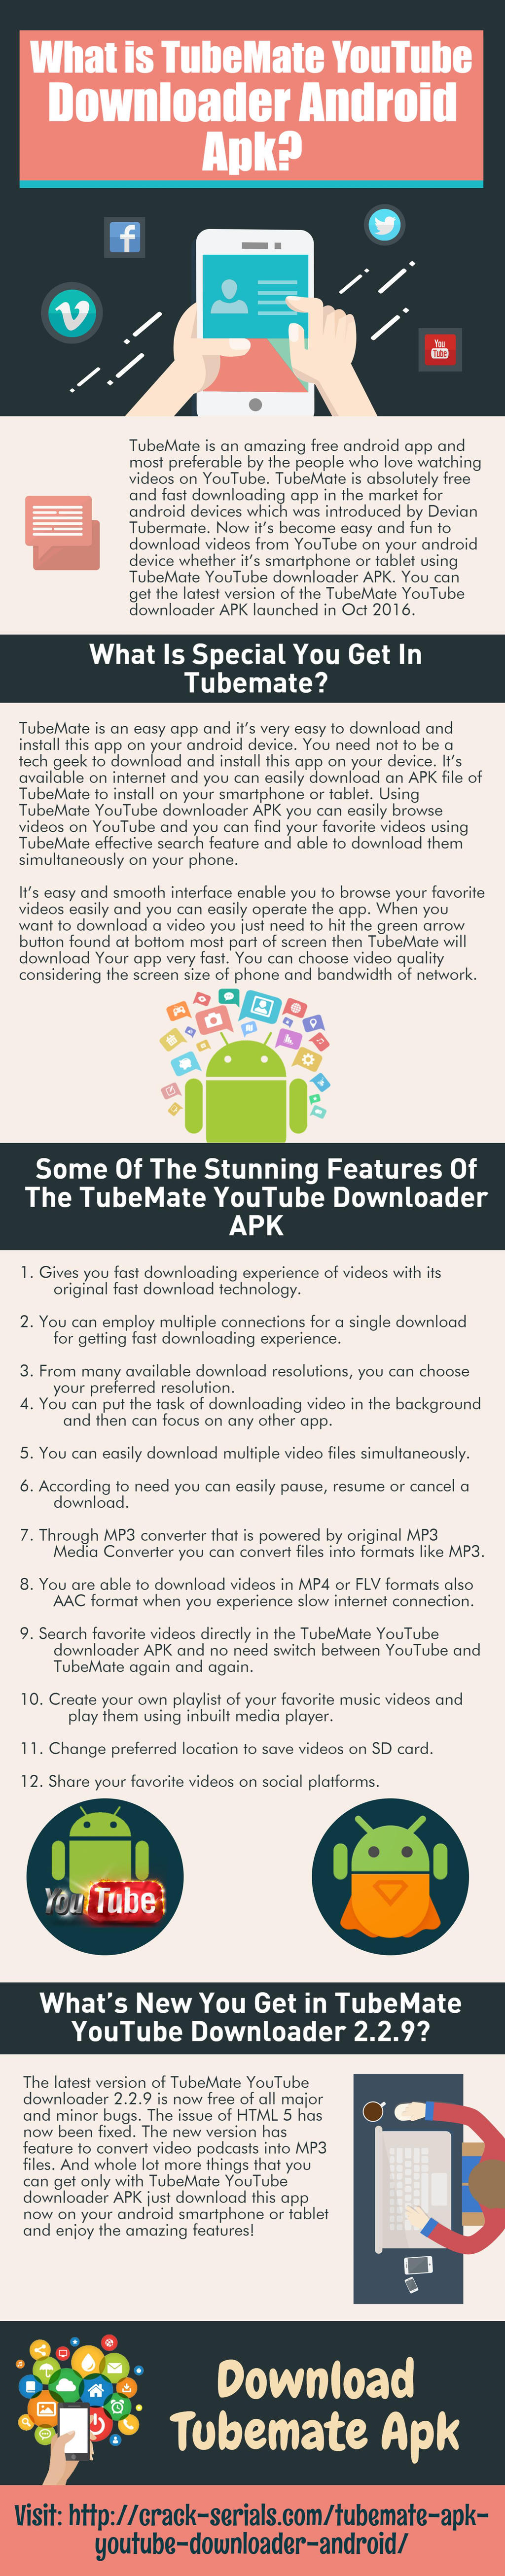 What is TubeMate YouTube downloader android APK by hoggkevin